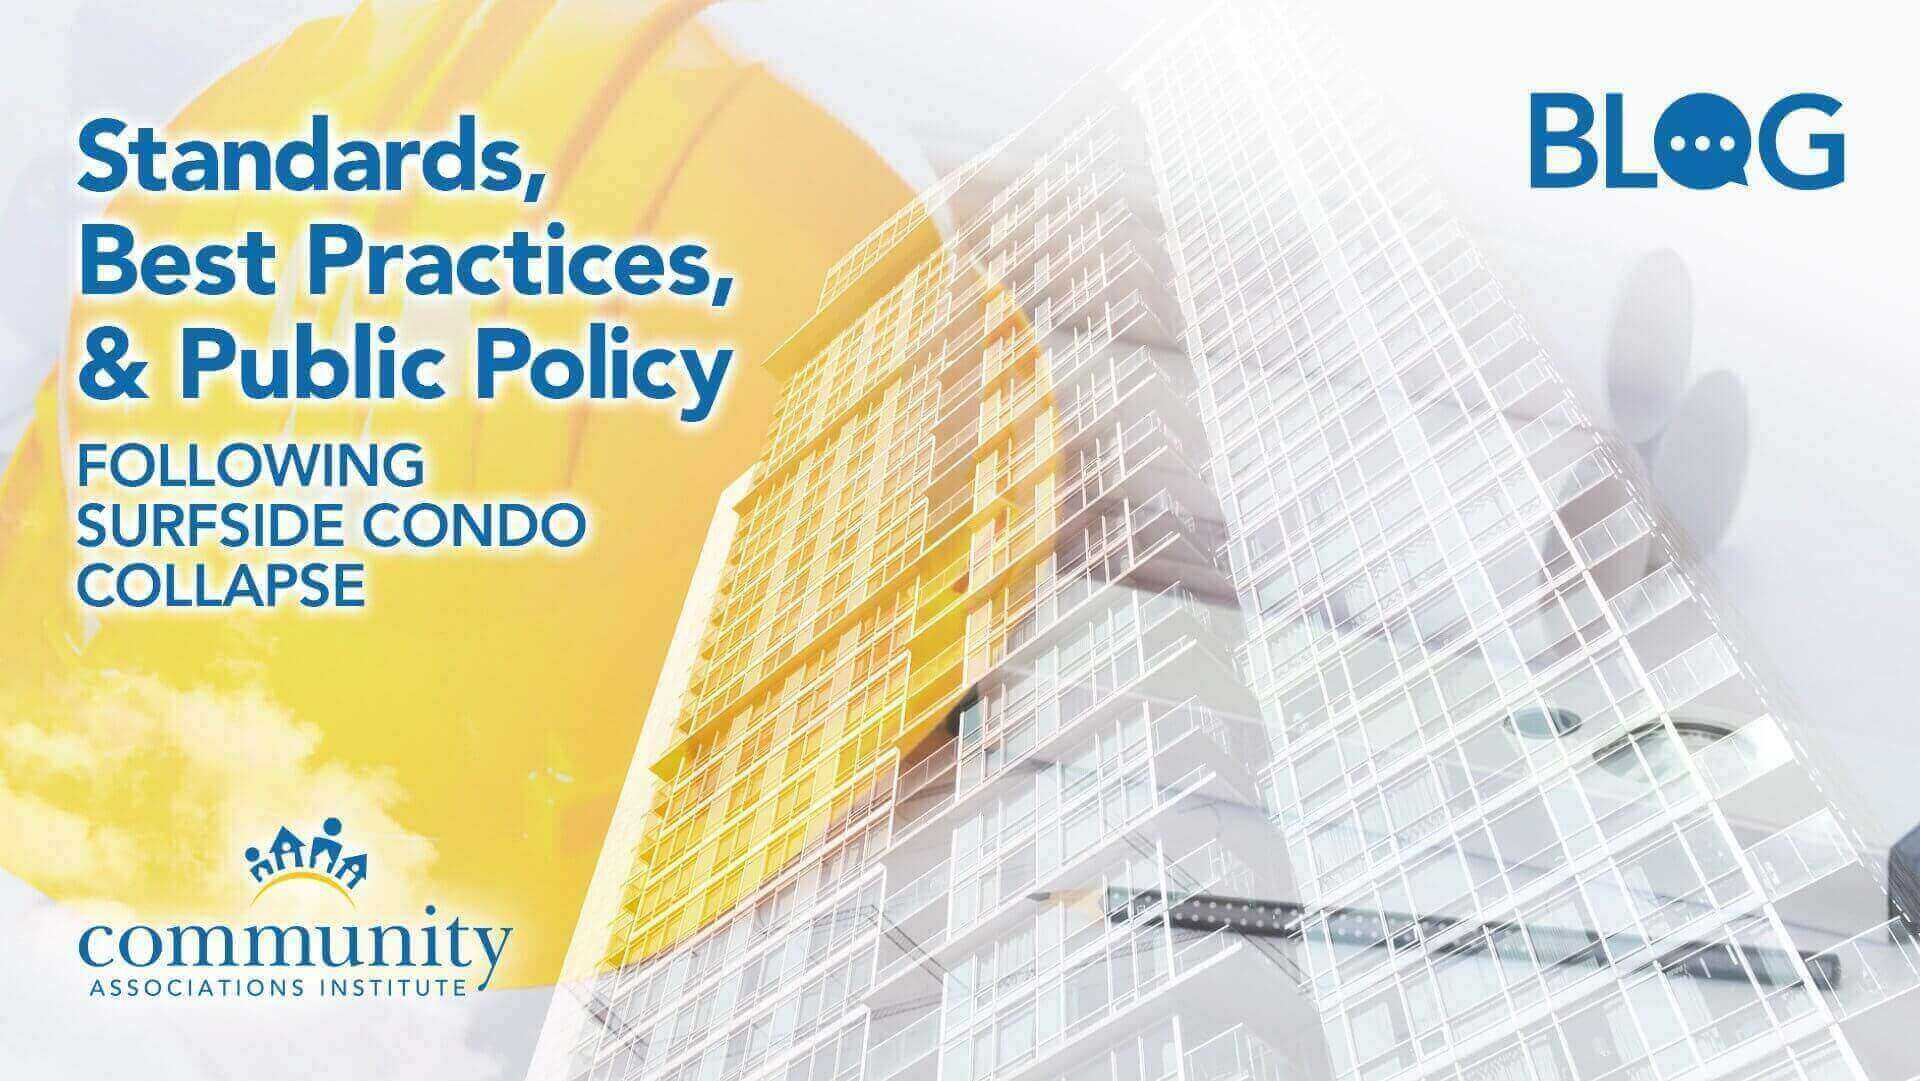 Blog: Standards, Best Practices, and Public Policy Following Surfside Condo Collapse - National CAI Blog - By Dawn Bauman, CAE on Jul 8 2021, ppeared first on CAI Advocacy Blog